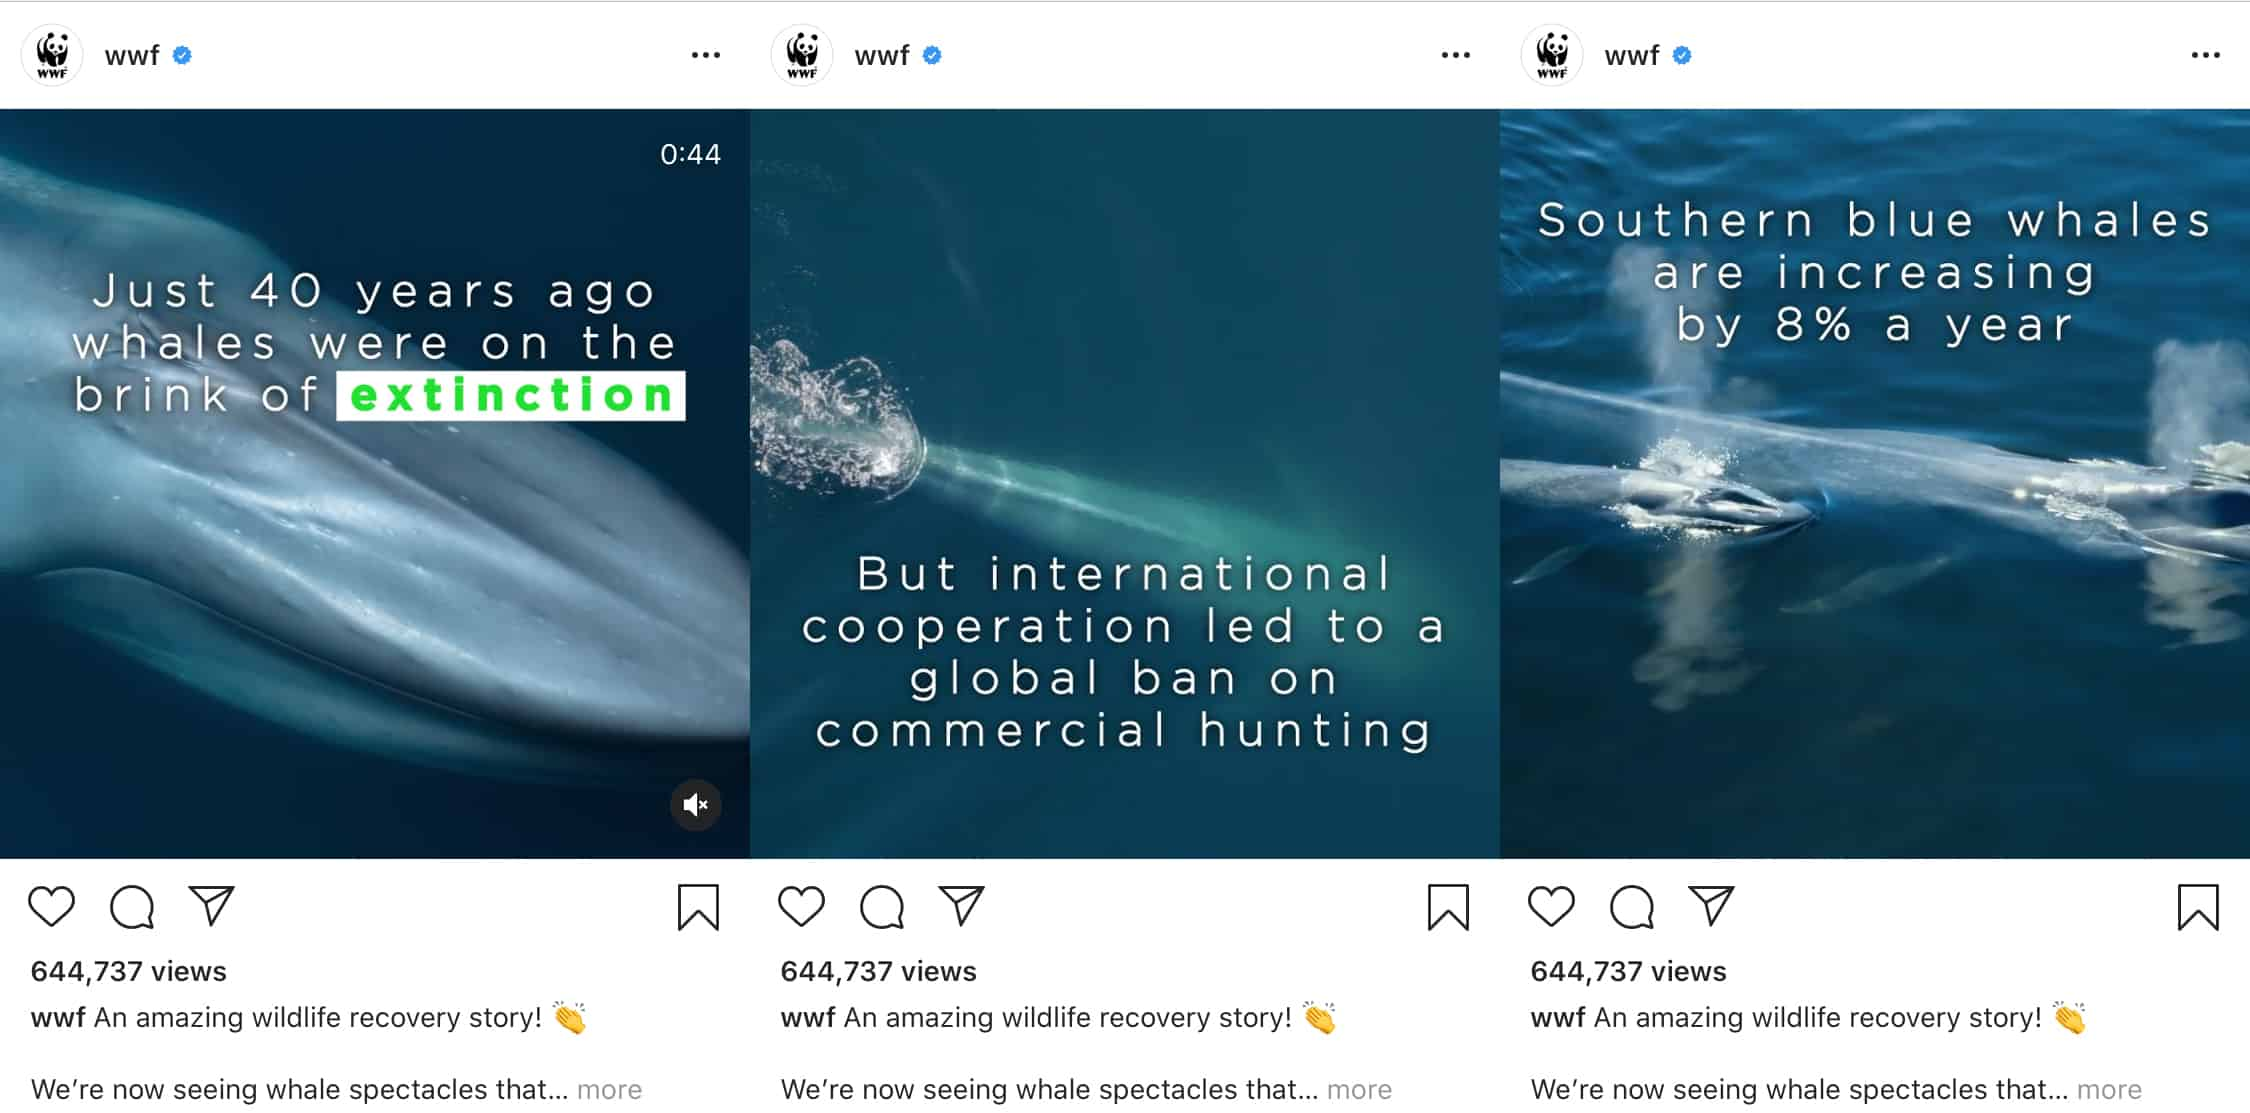 WWF instagram video with text overlay